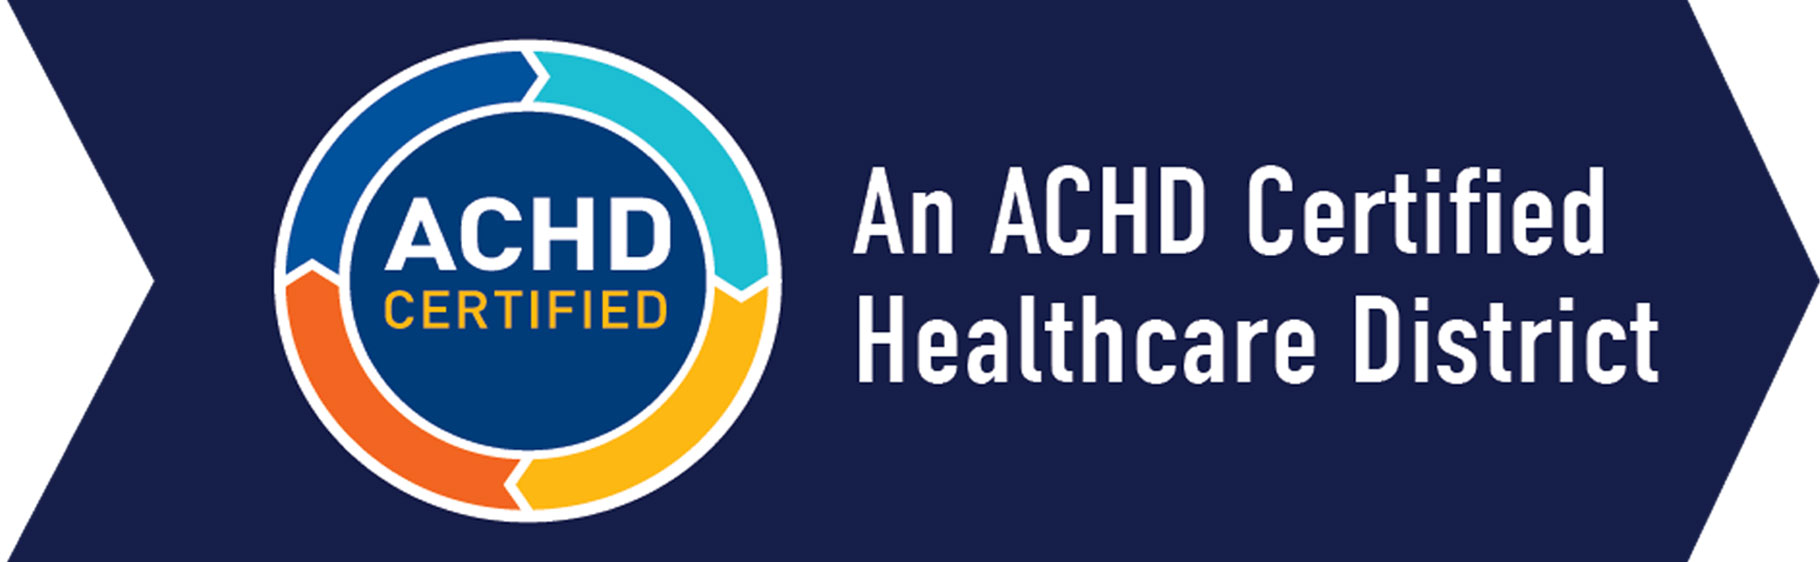 Banner Picture of an arrow looking icon that says: An ACHD Certified Healthcare District  There is a circle icon inside the arrow looking icon. It says: ACHD CERTIFIED